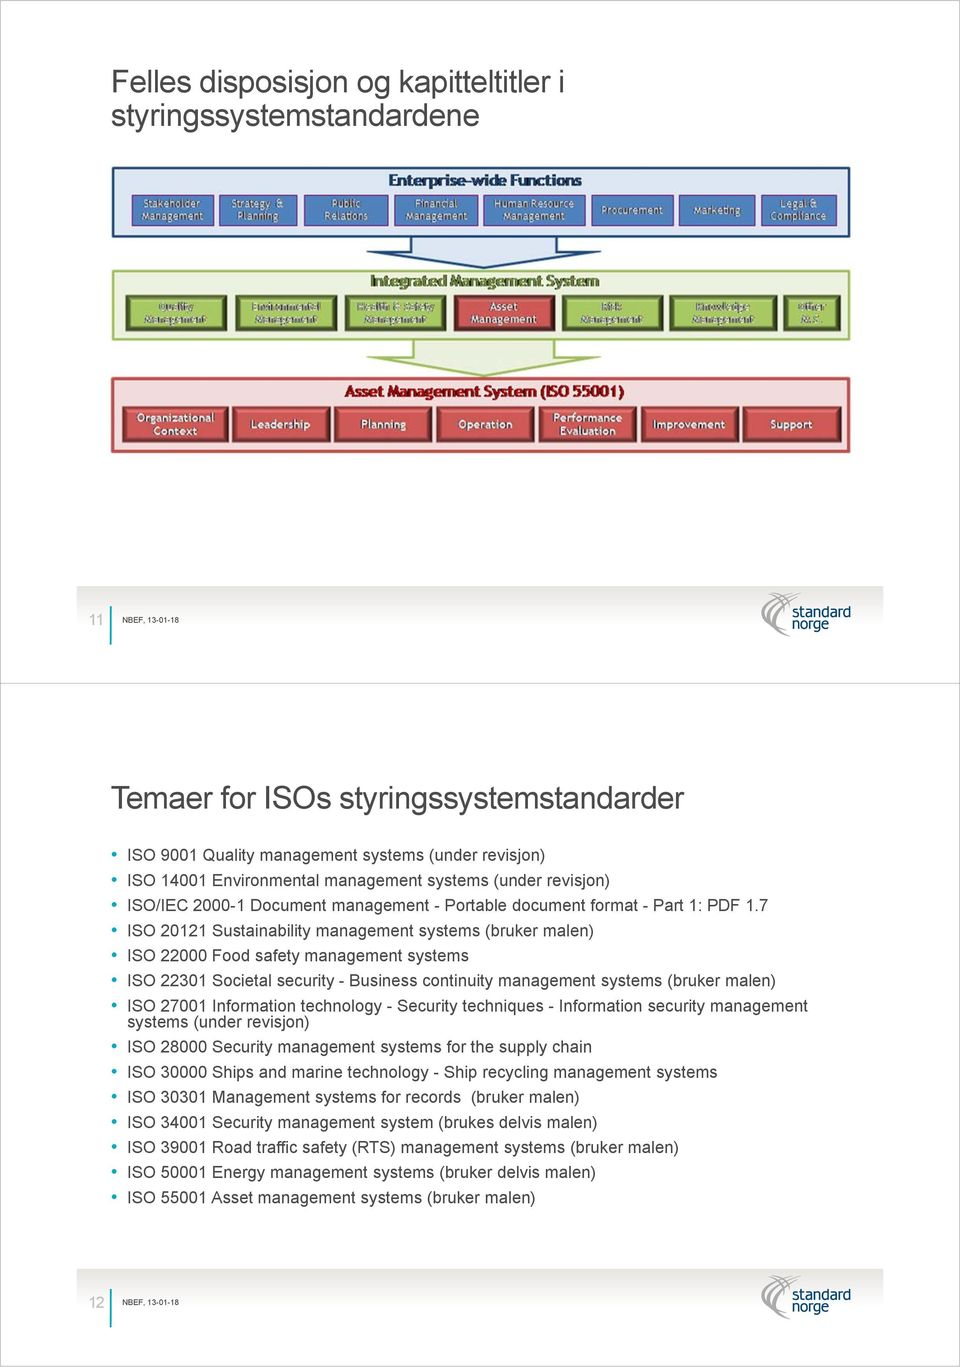 7 ISO 20121 Sustainability management systems (bruker malen) ISO 22000 Food safety management systems ISO 22301 Societal security - Business continuity management systems (bruker malen) ISO 27001